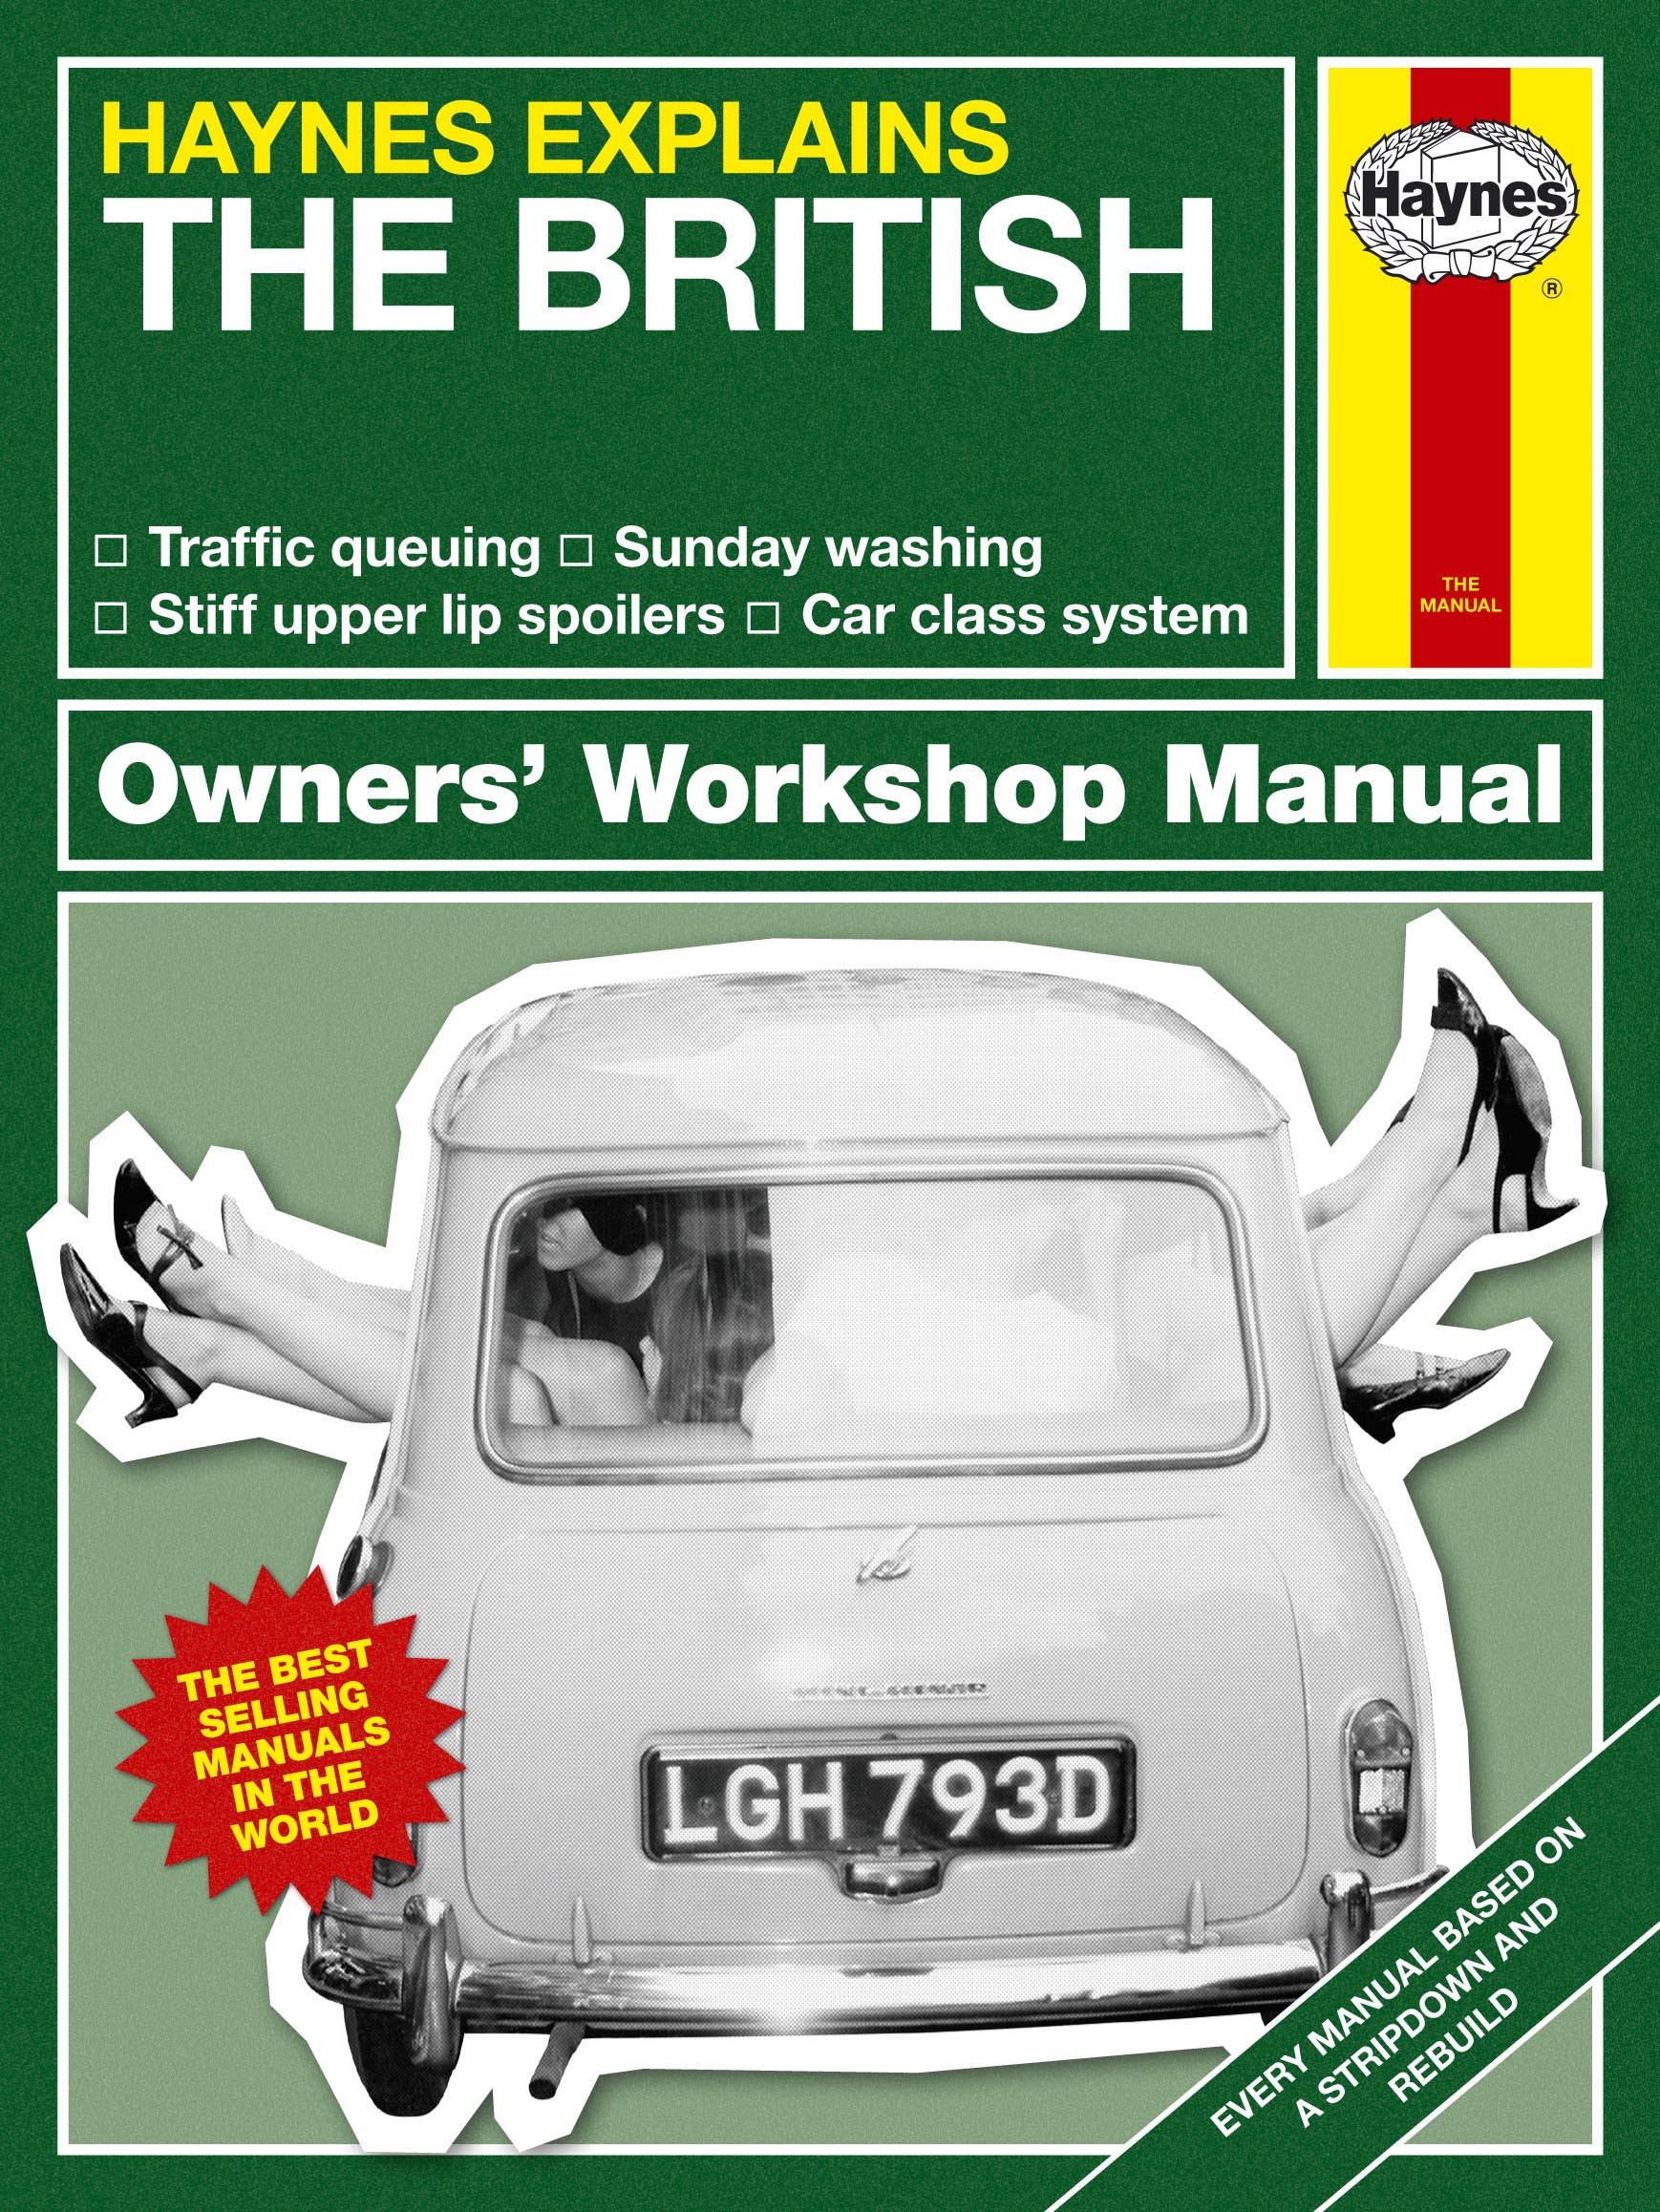 home light wiring diagram how to draw a circuit haynes explains the british | publishing